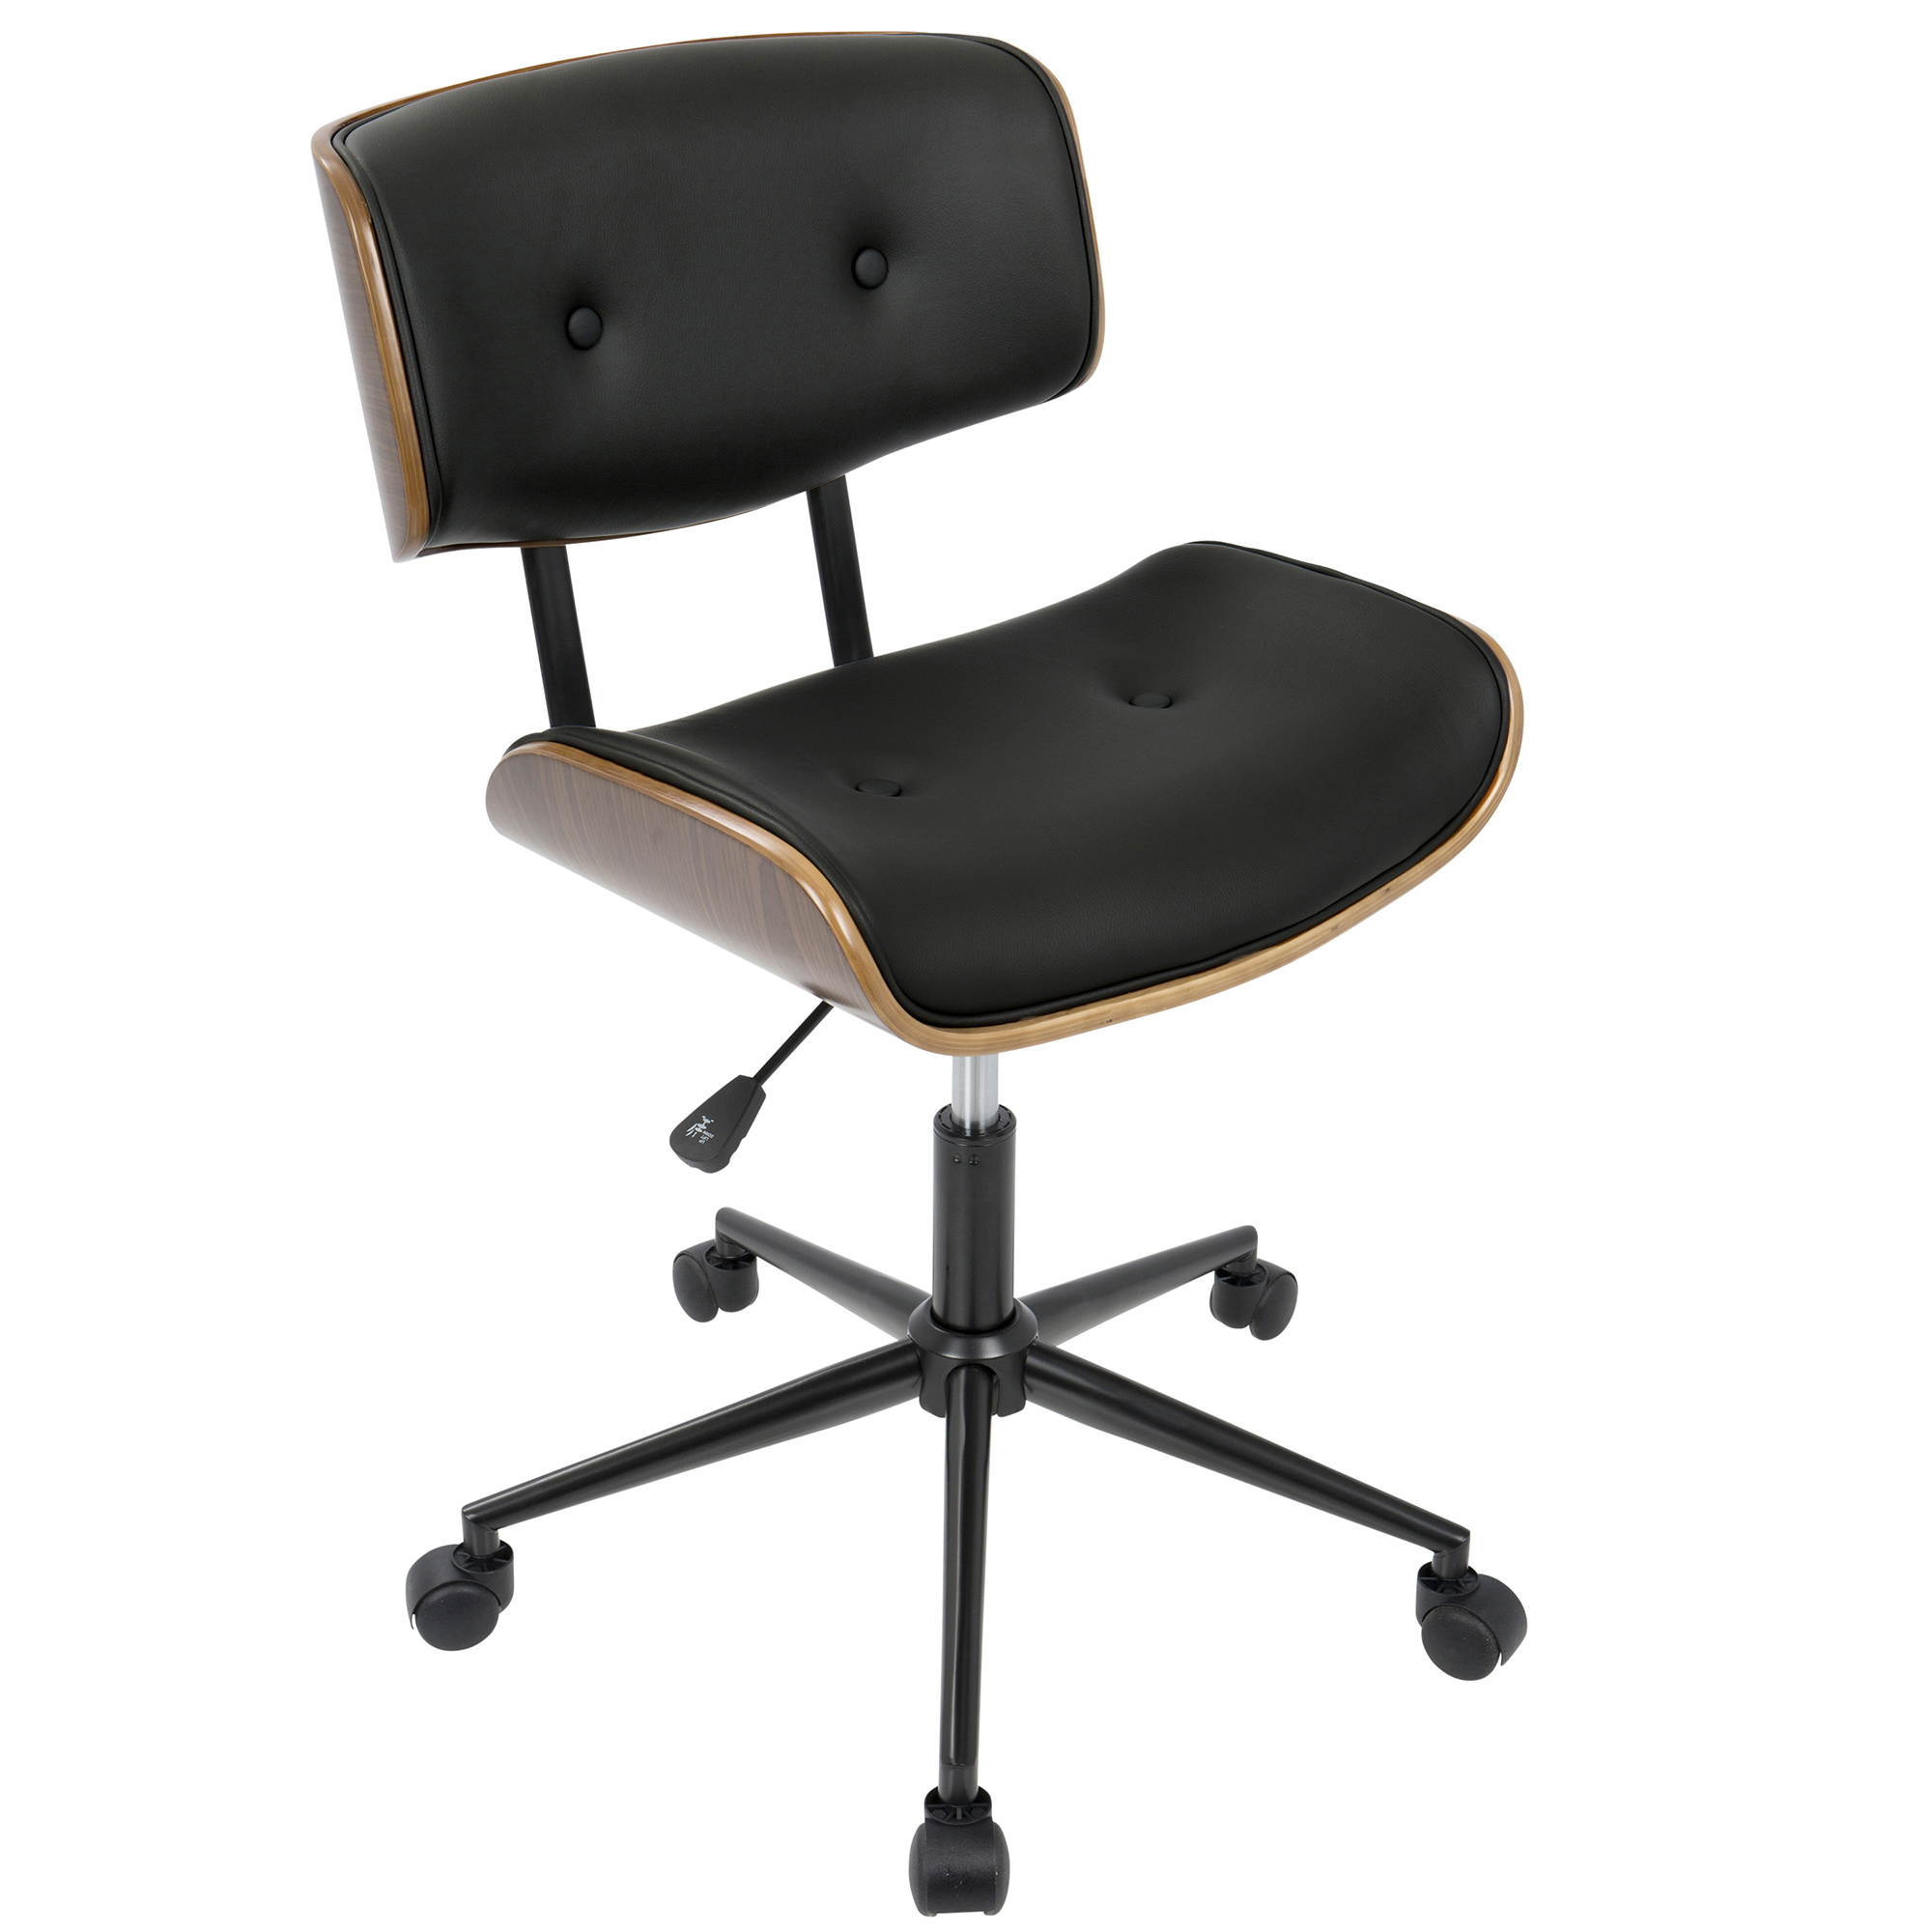 Lombardi Mid-Century Modern Adjustable Office Chair with Swivel in Walnut and Black by LumiSource